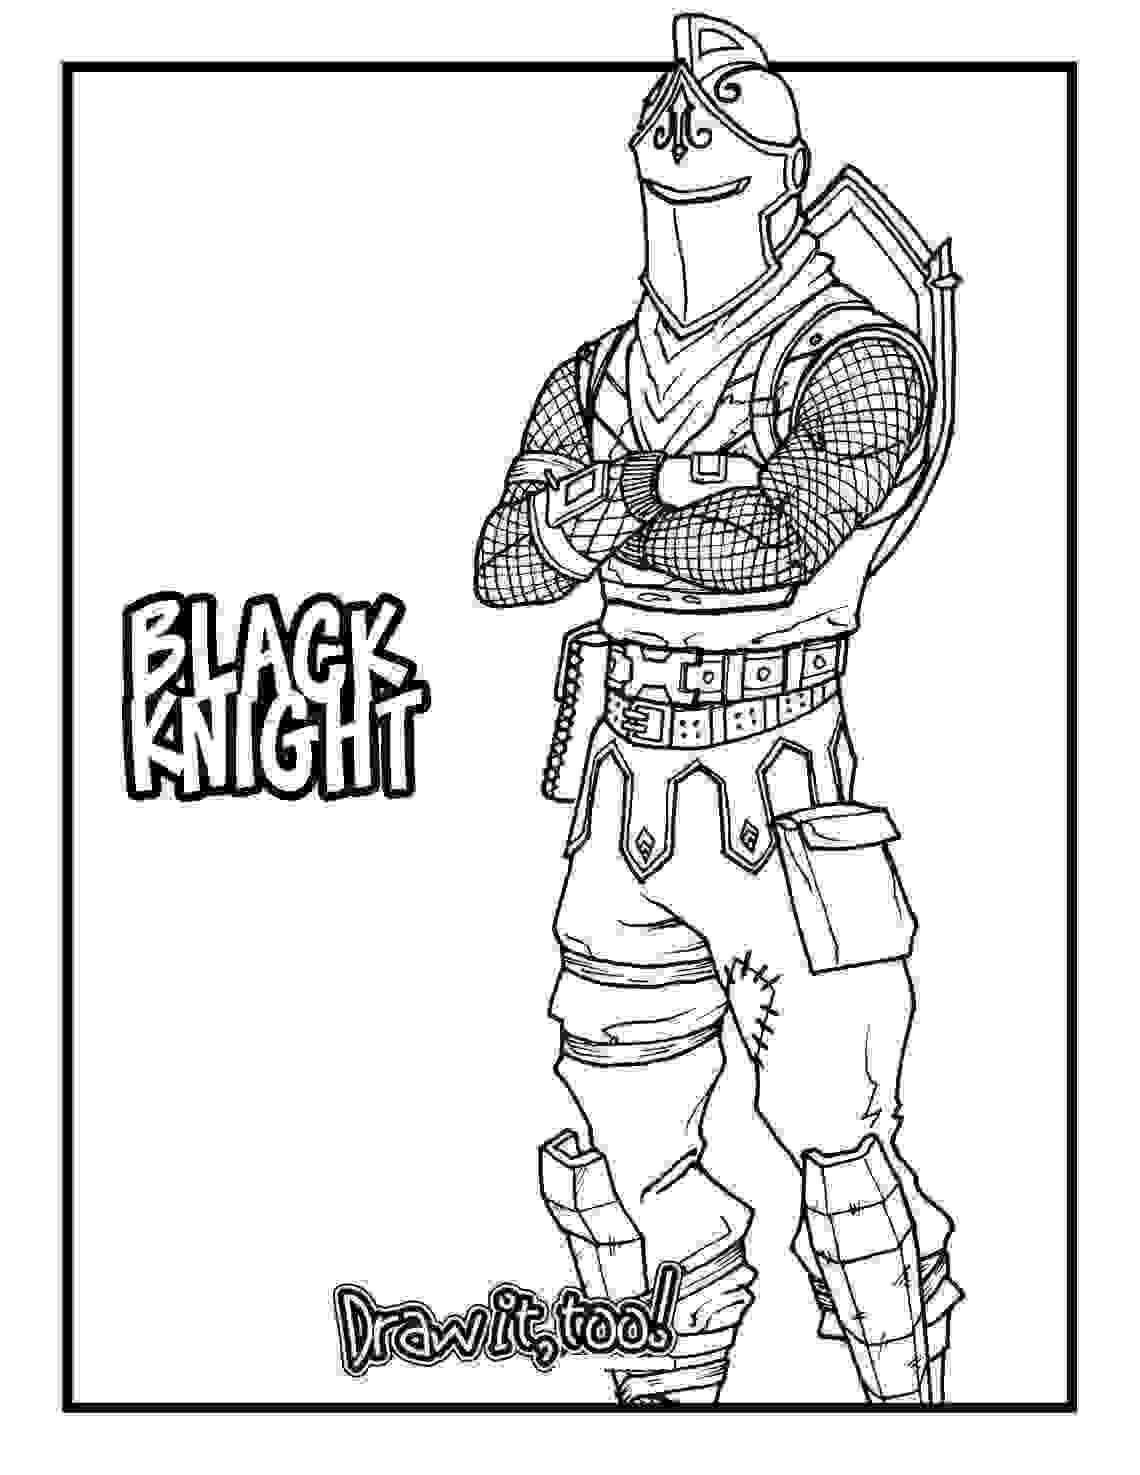 Black Knight is a Legendary Outfit for Battle Royale in Fortnite Coloring Page